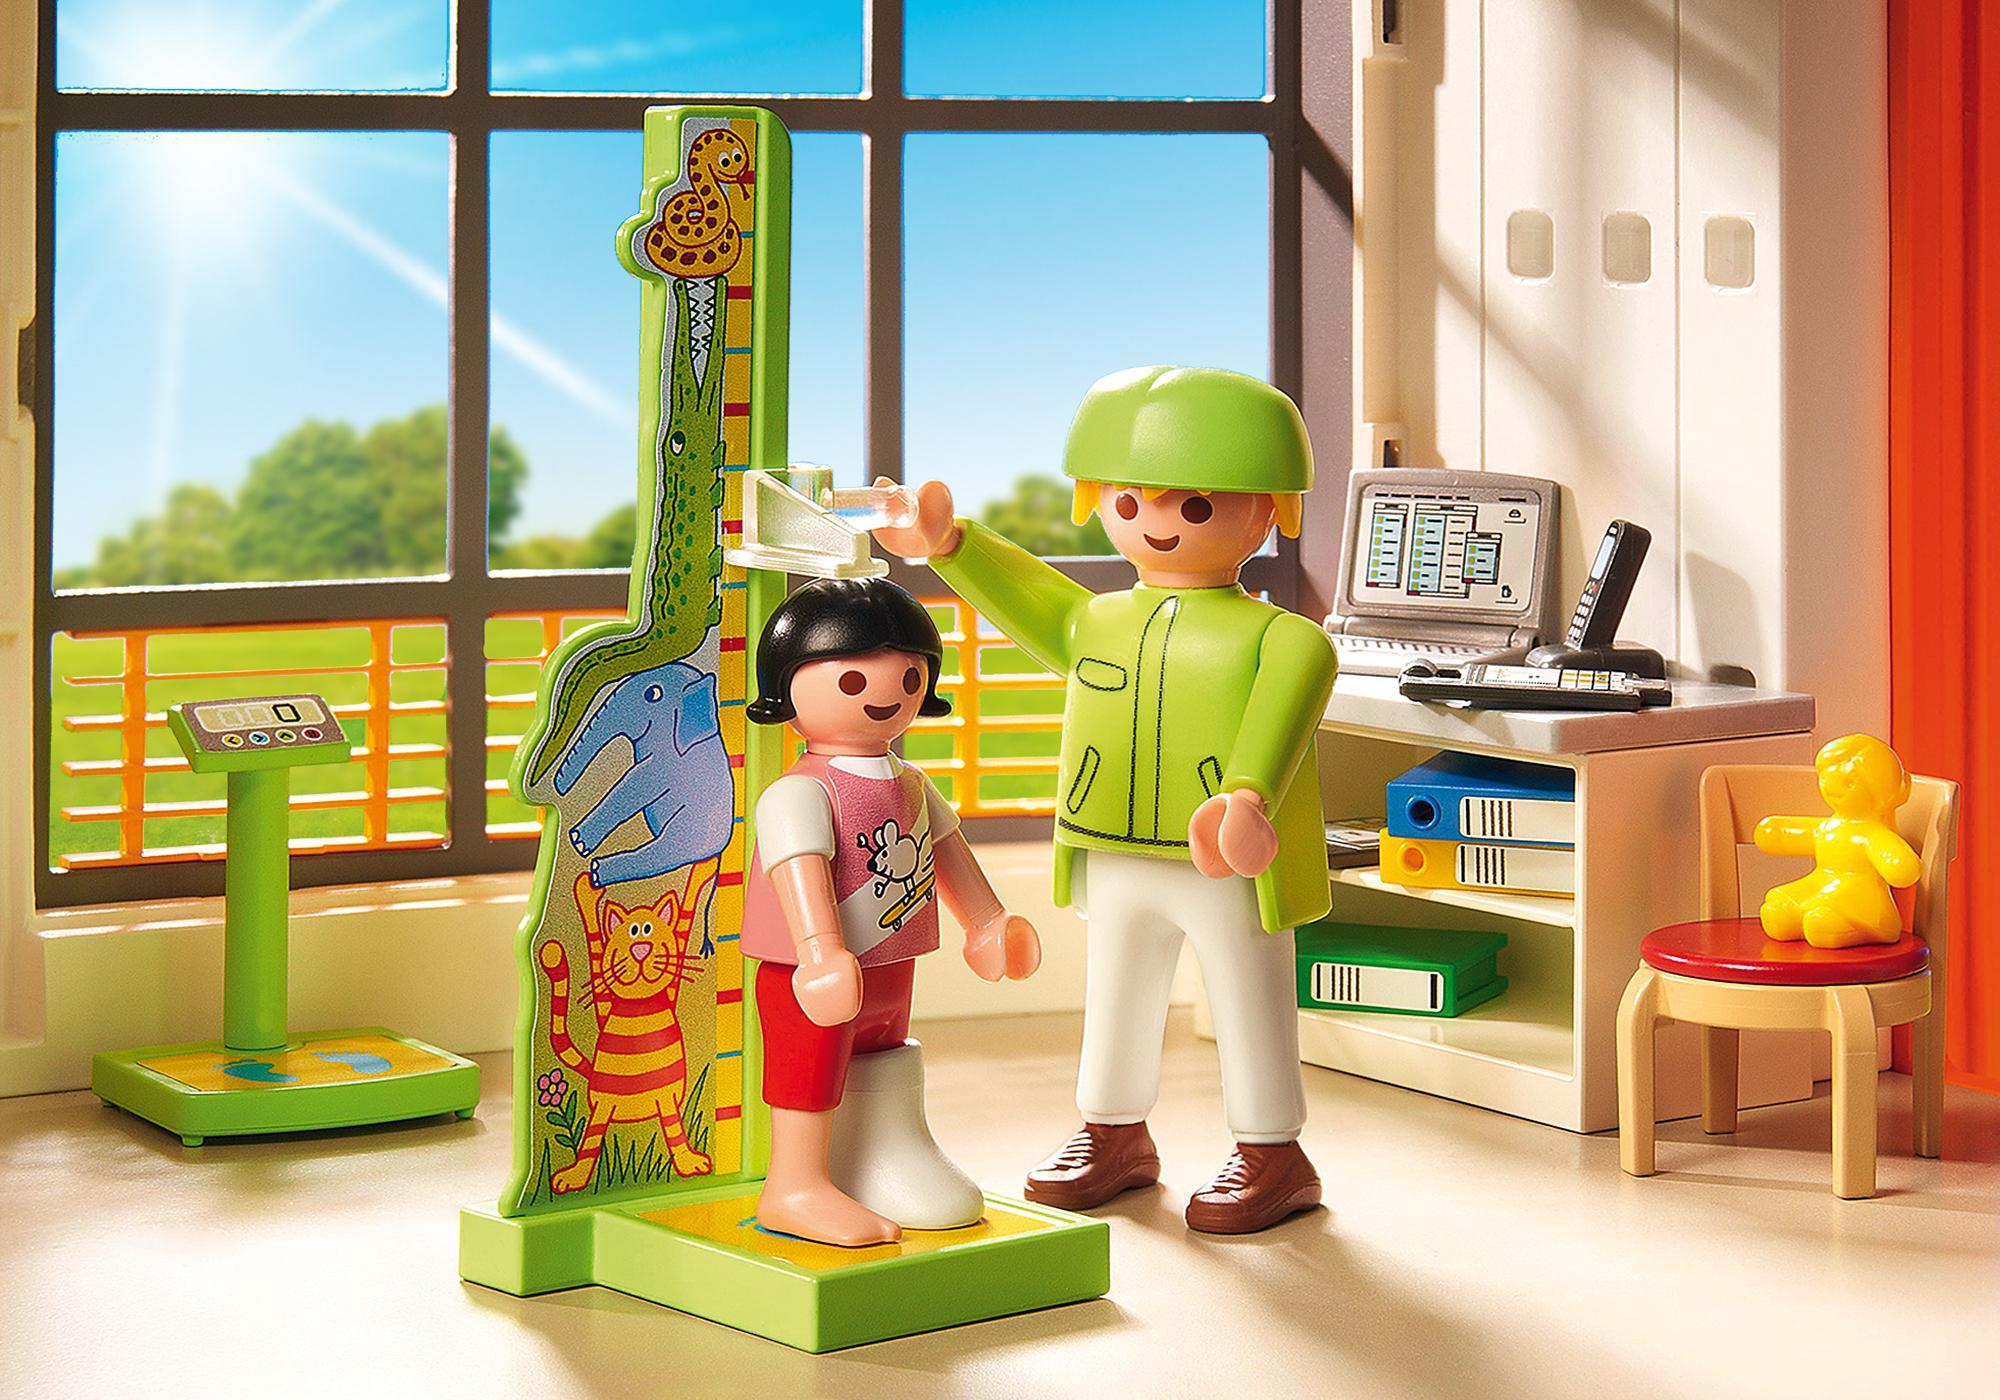 http://media.playmobil.com/i/playmobil/6657_product_extra2/Hospital Infantil